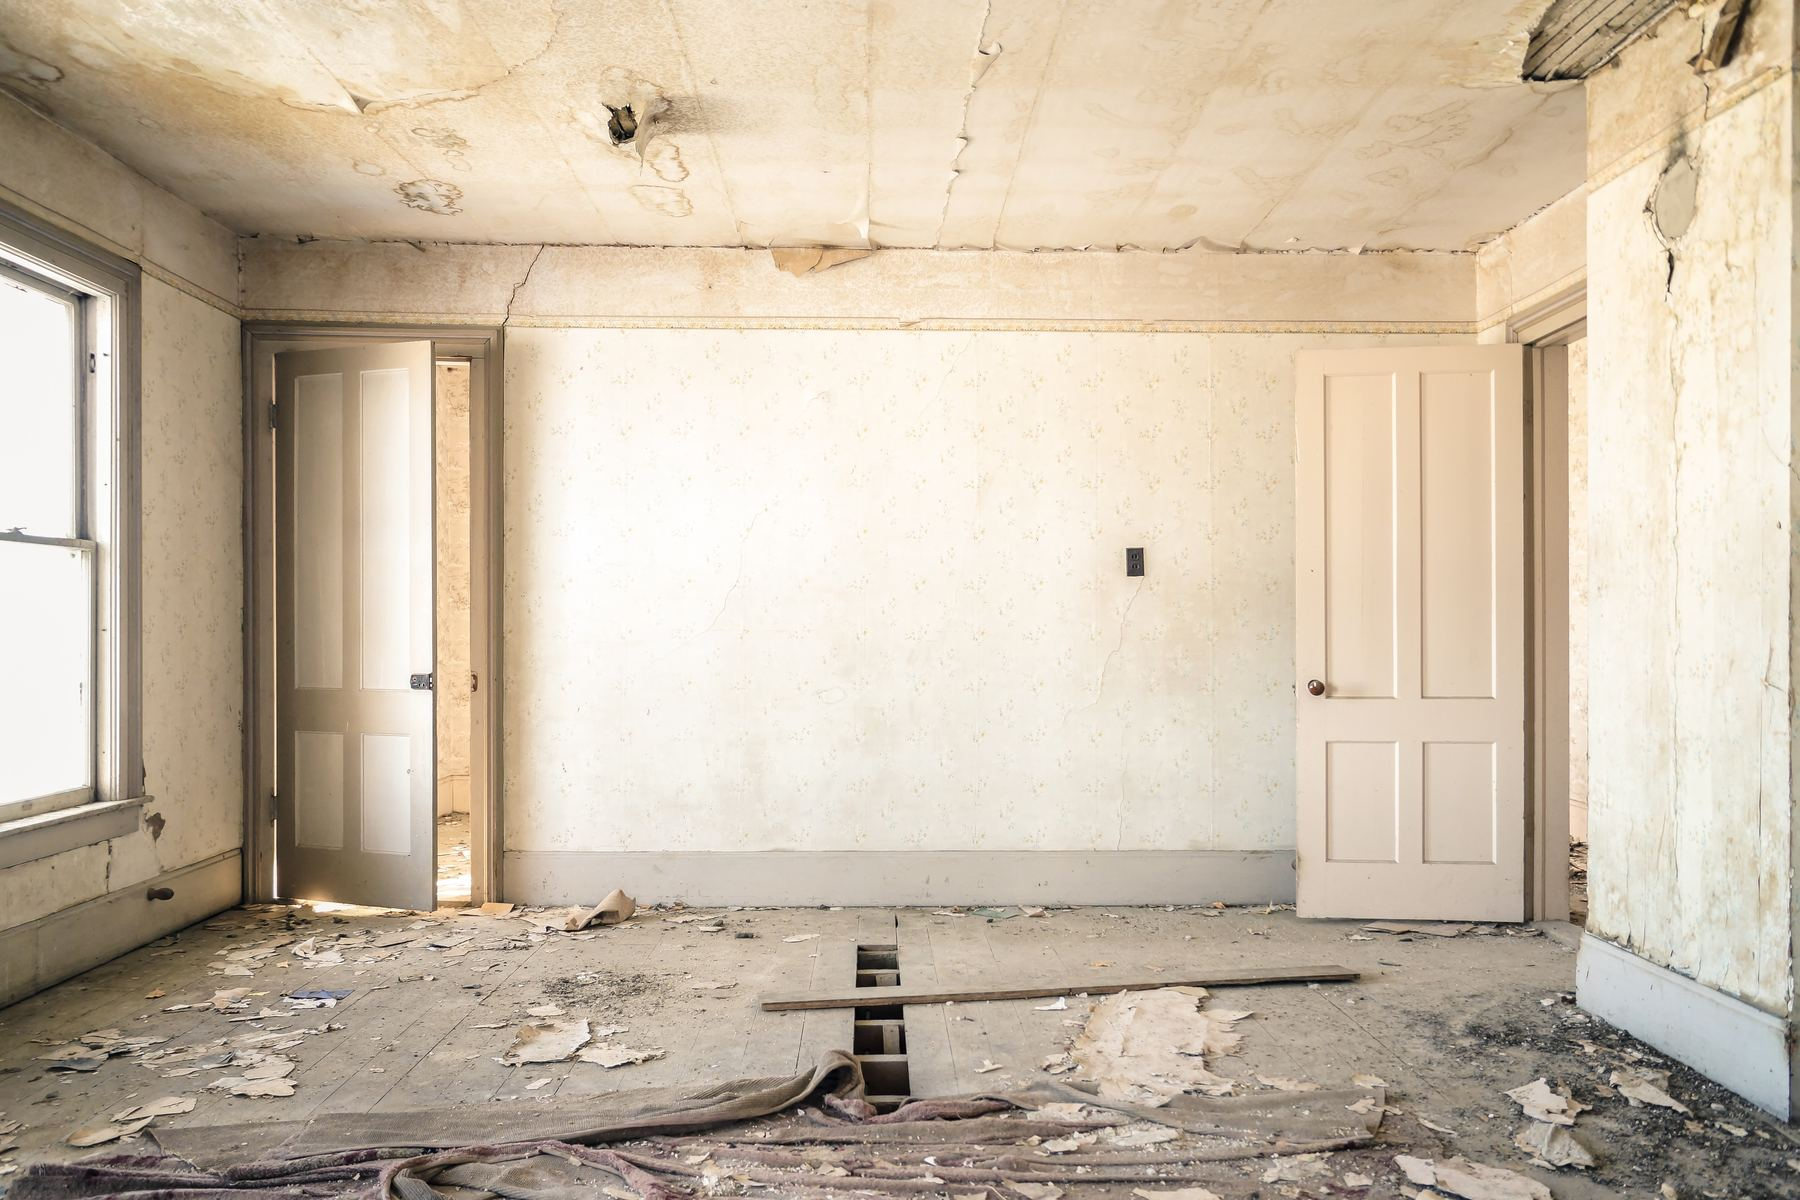 Three Nasty Surprises During Home Renovations